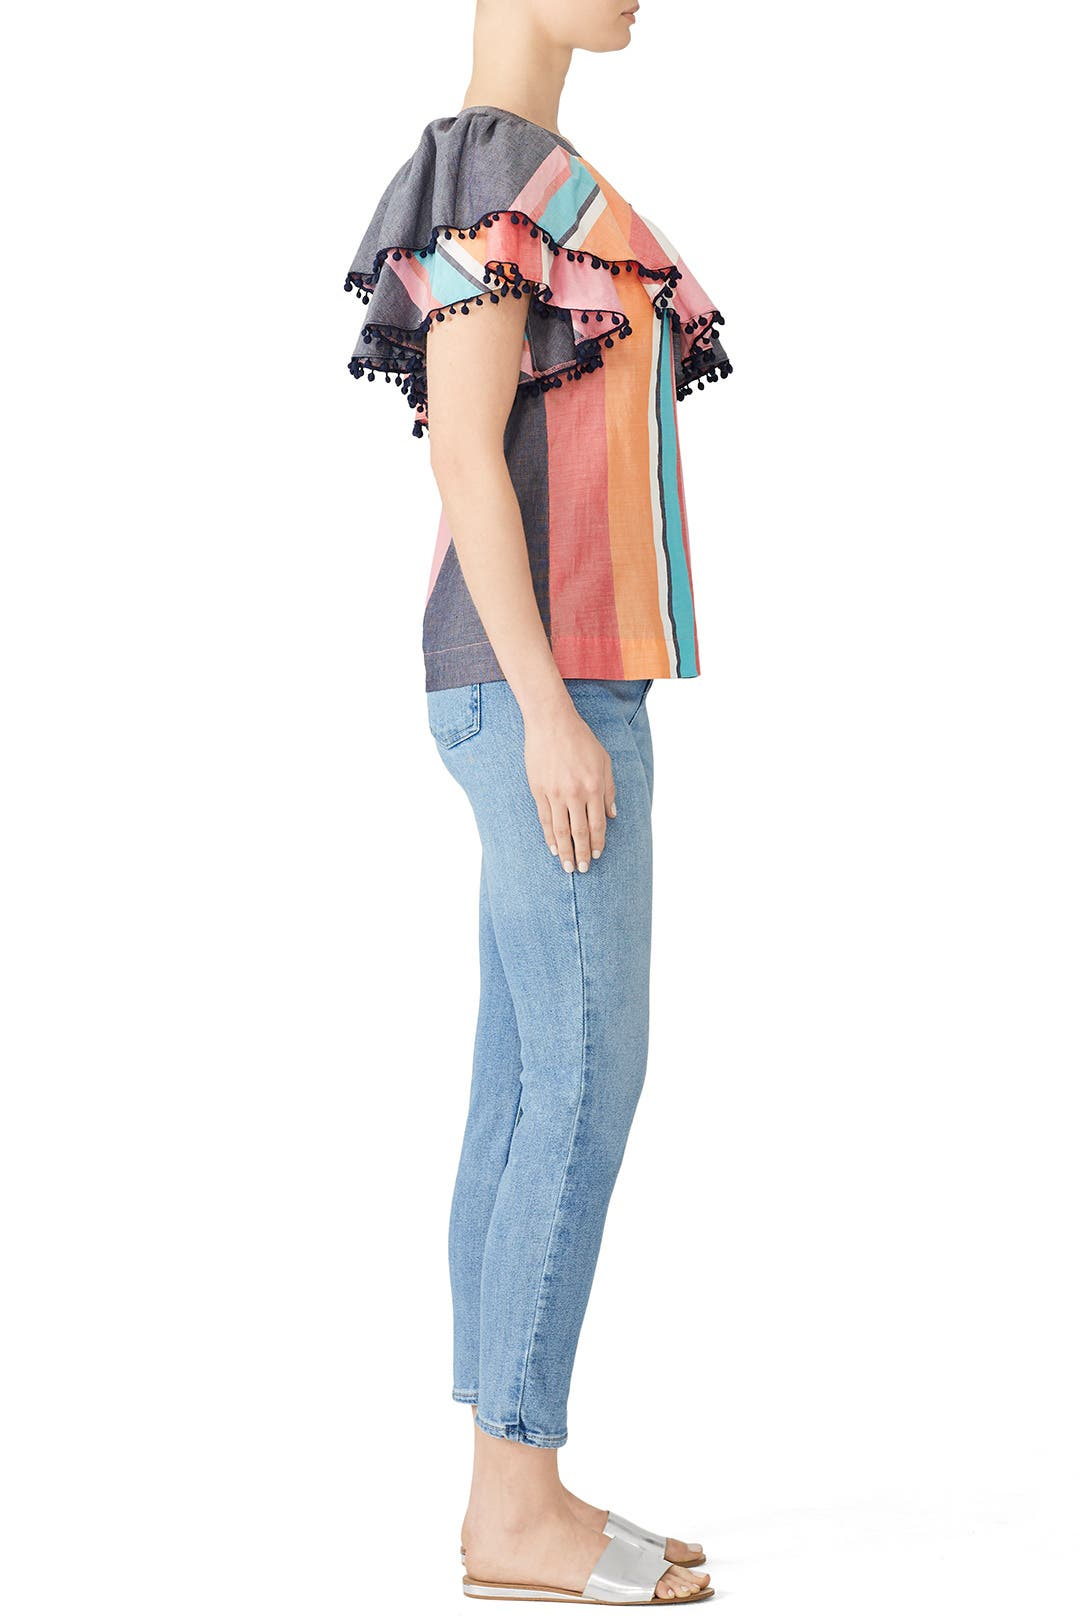 b64049c521b5a Striped Los Angeles Top by Trina Turk for  50